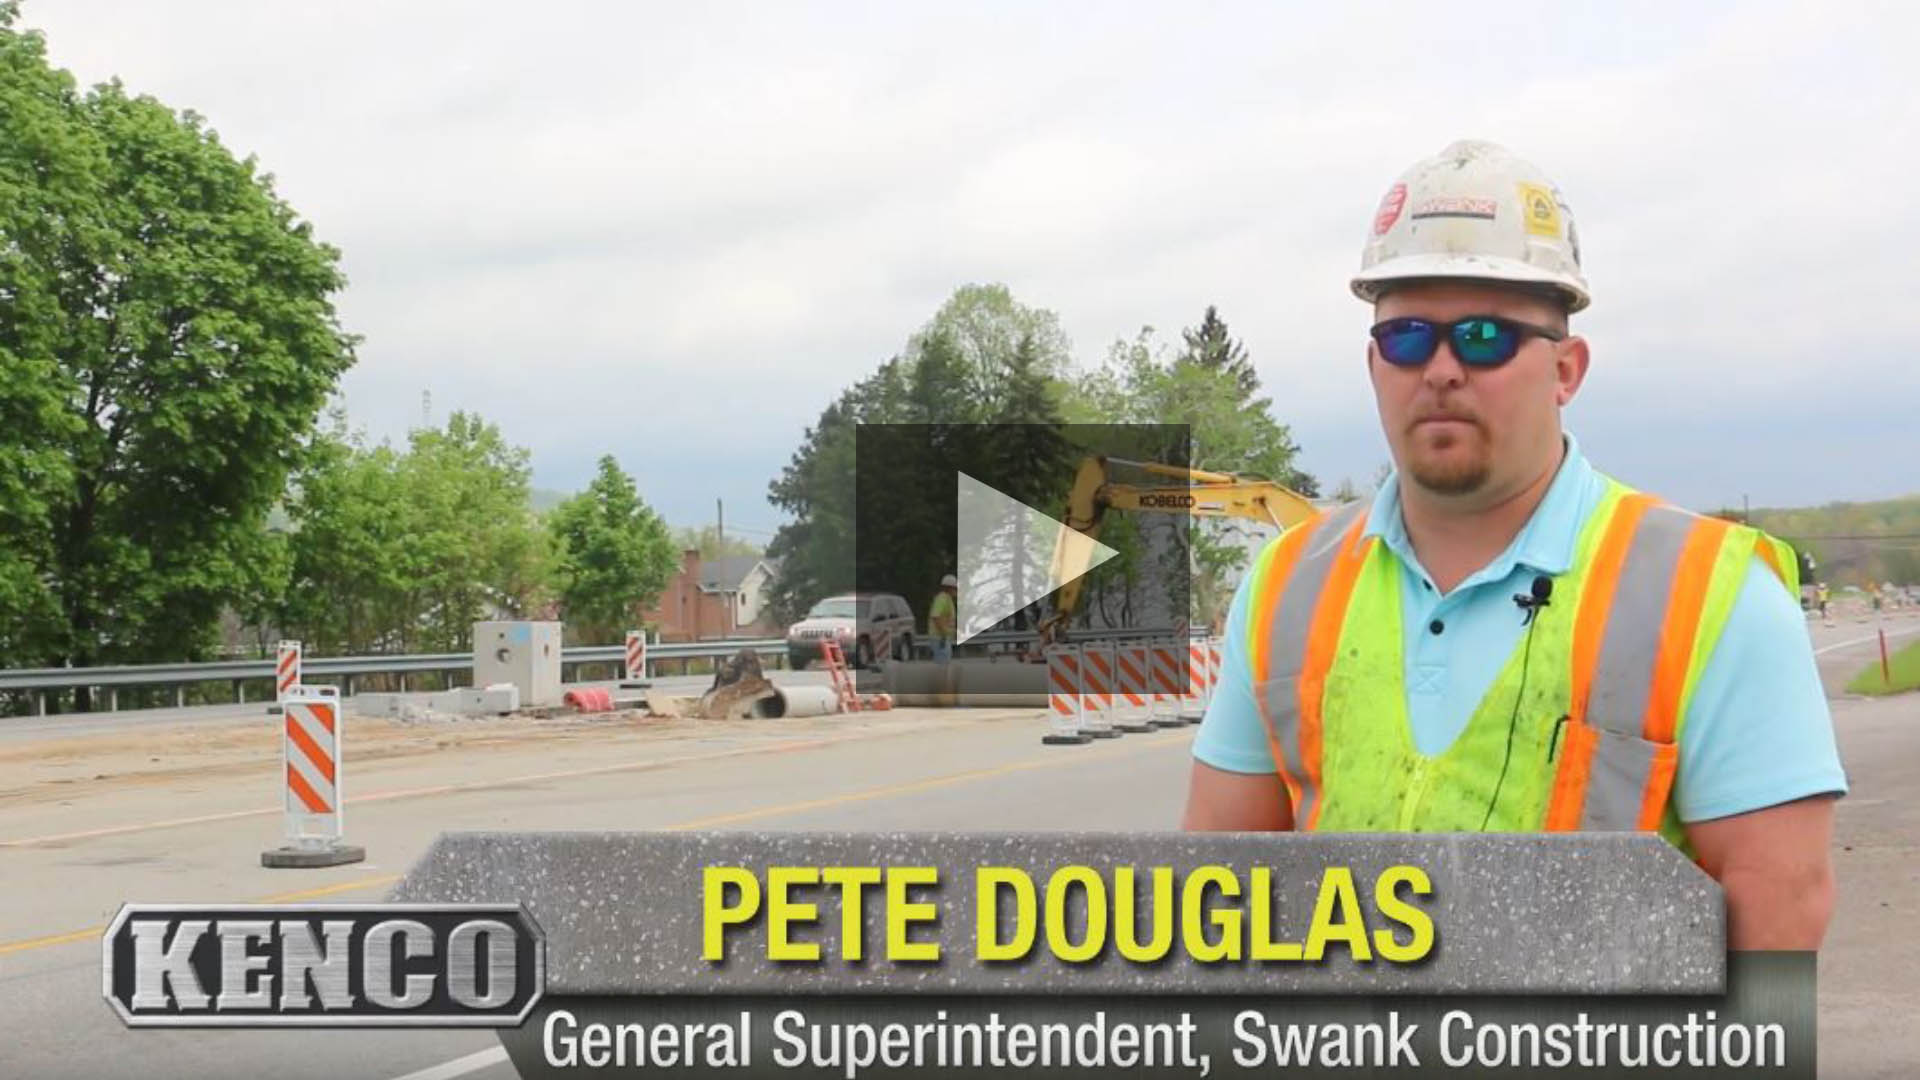 Swank Construction Kenco Testimonial